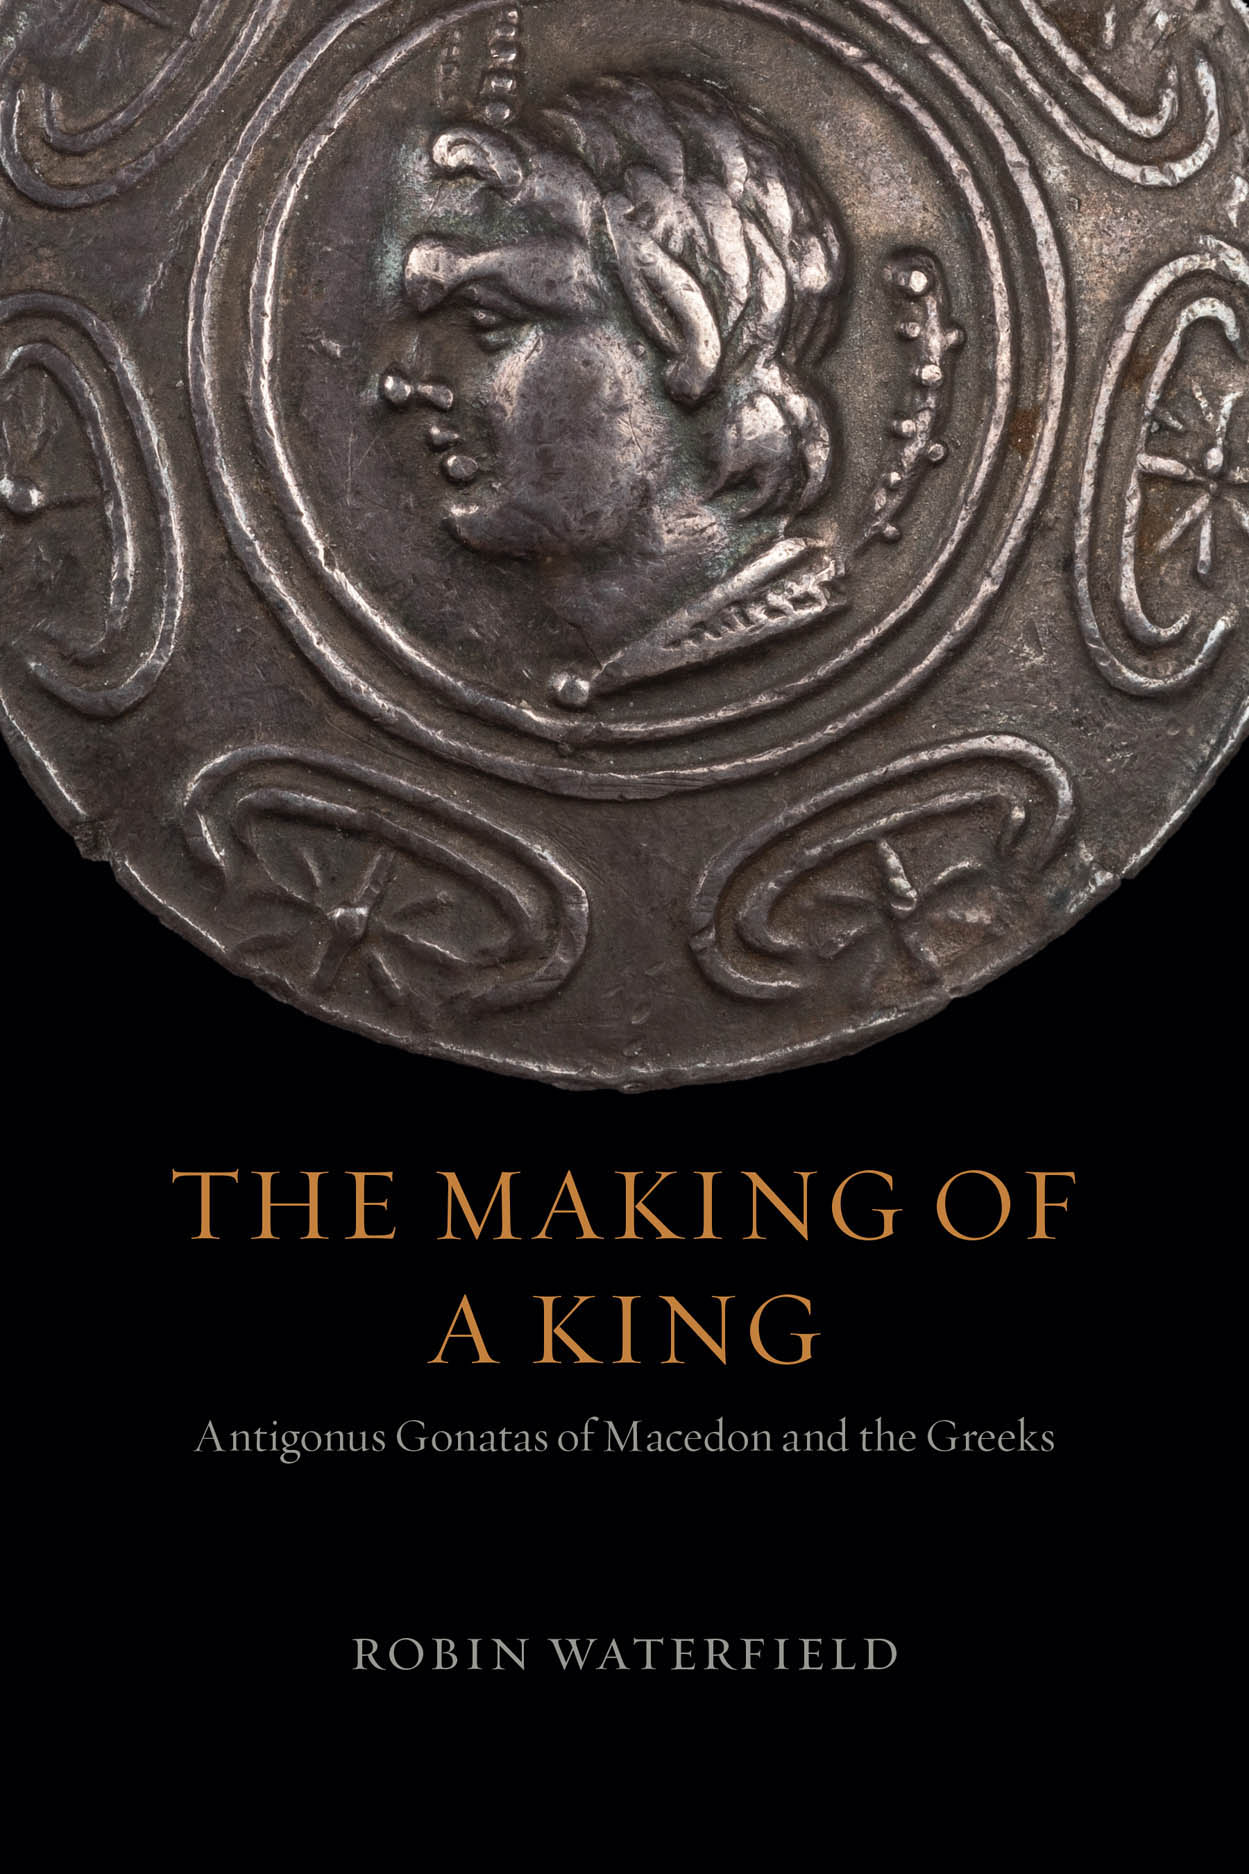 The Making of a King: Antigonus Gonatas of Macedon and the Greeks